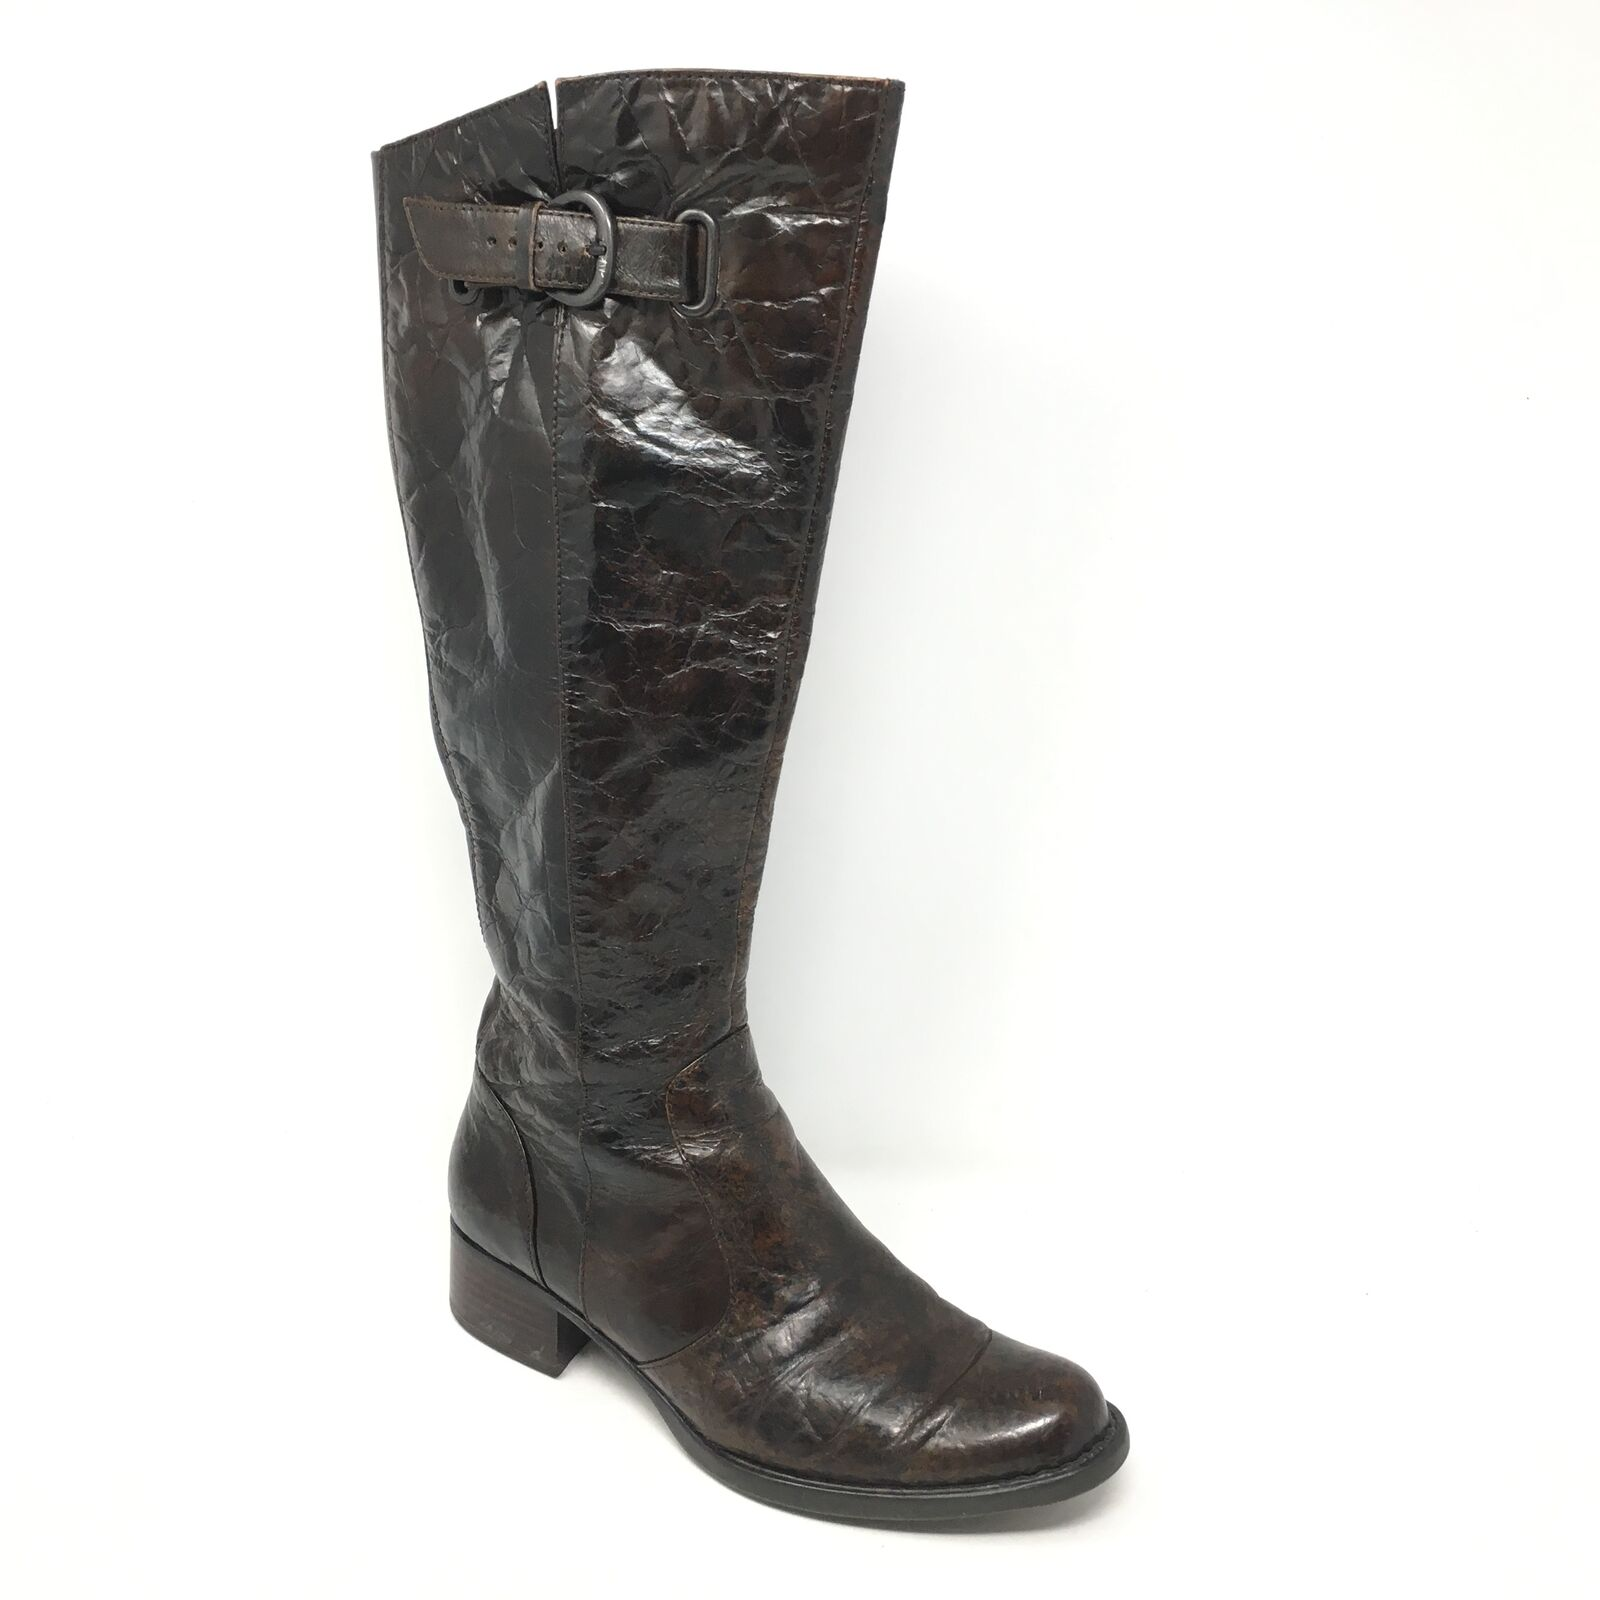 Women's Born Roxie Knee High Boots shoes Size 6M Brown Distressed Leather J7